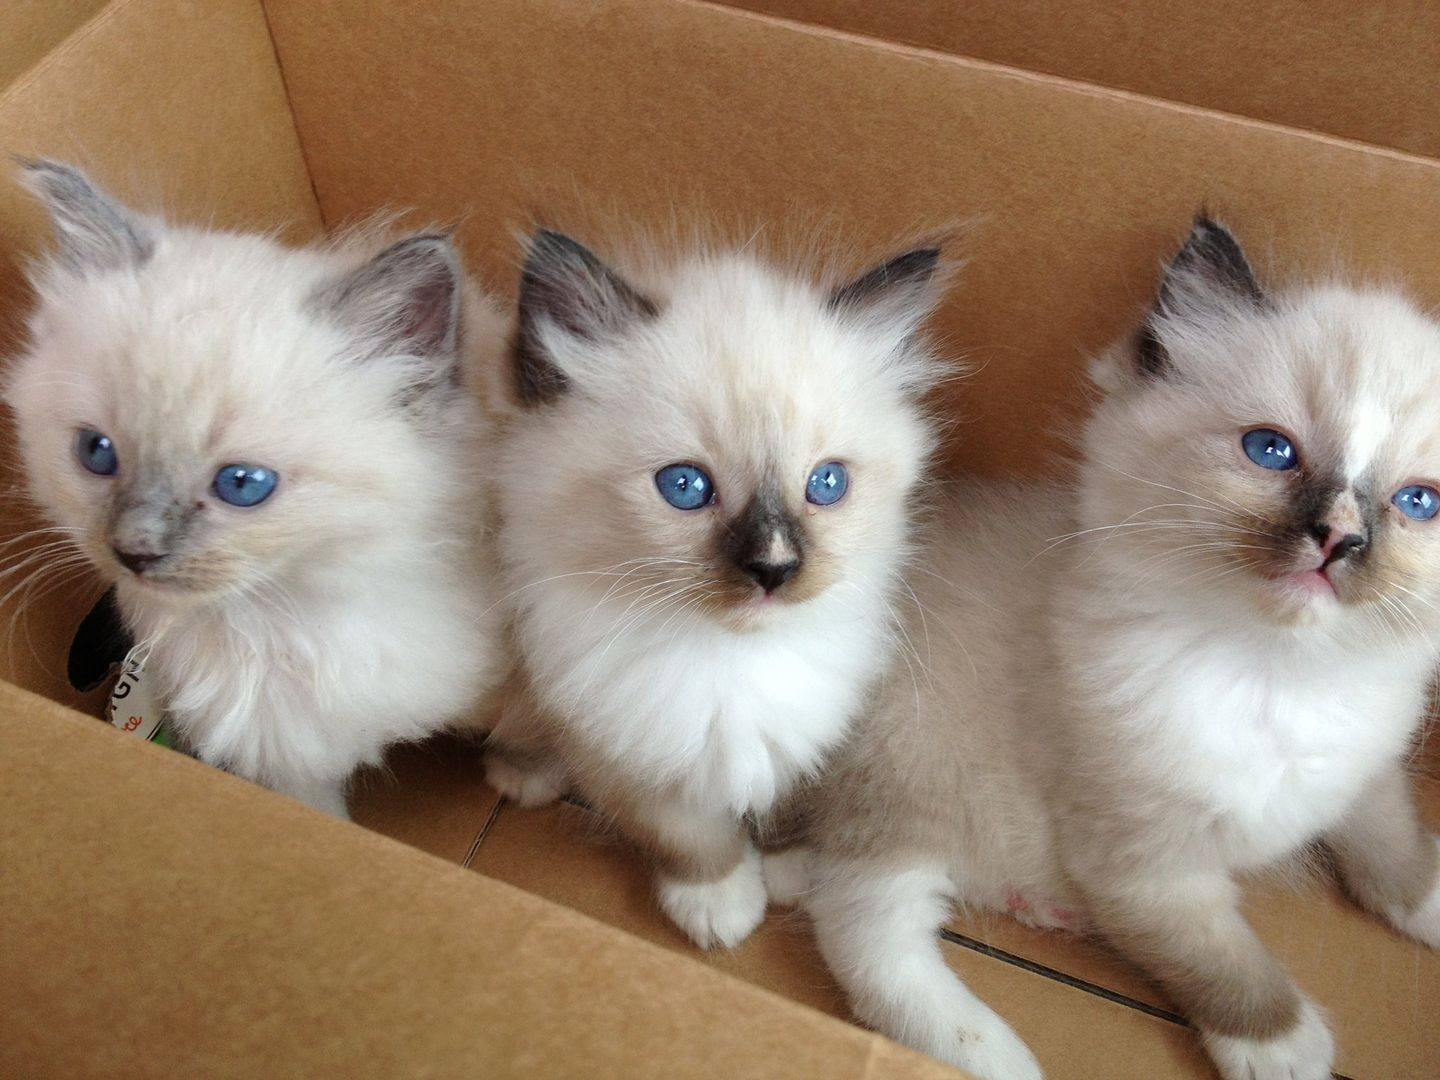 Ragdoll Cats and Kittens Ragdoll Cats and Kittens